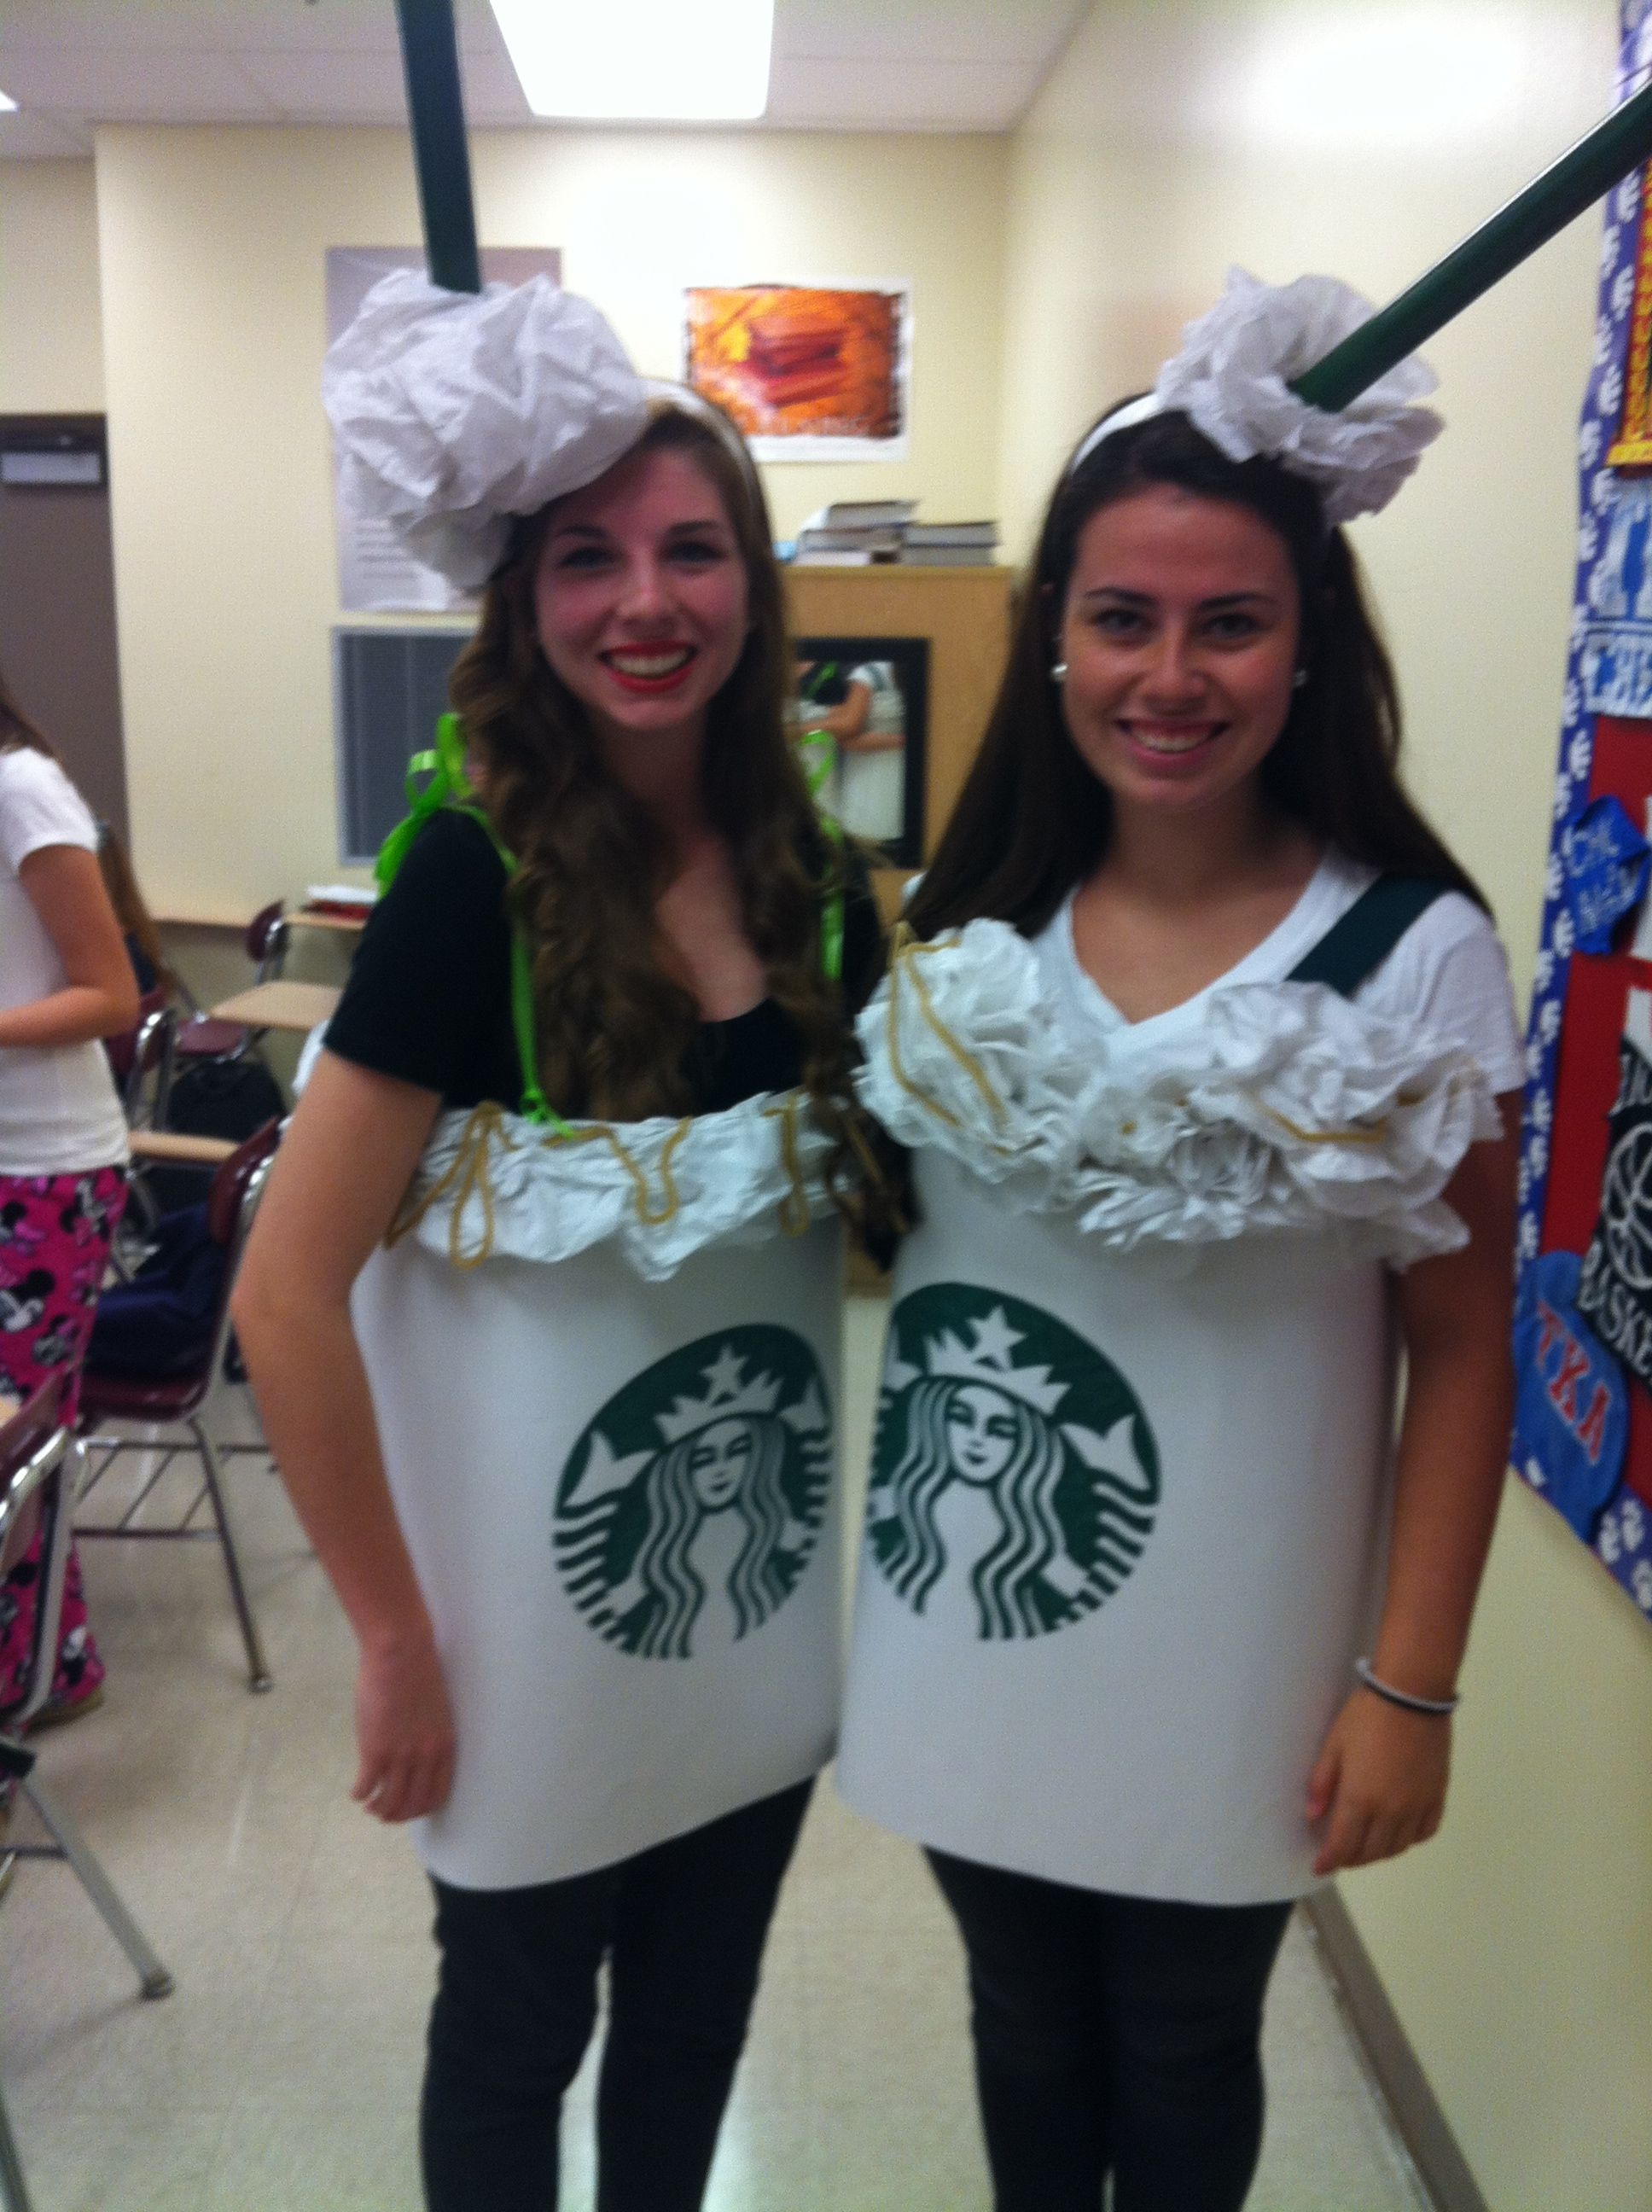 Our twin day costume  Twin DayHomecoming IdeasHomecoming. Our twin day costume    Cute ideas   Pinterest   Twins  Costumes